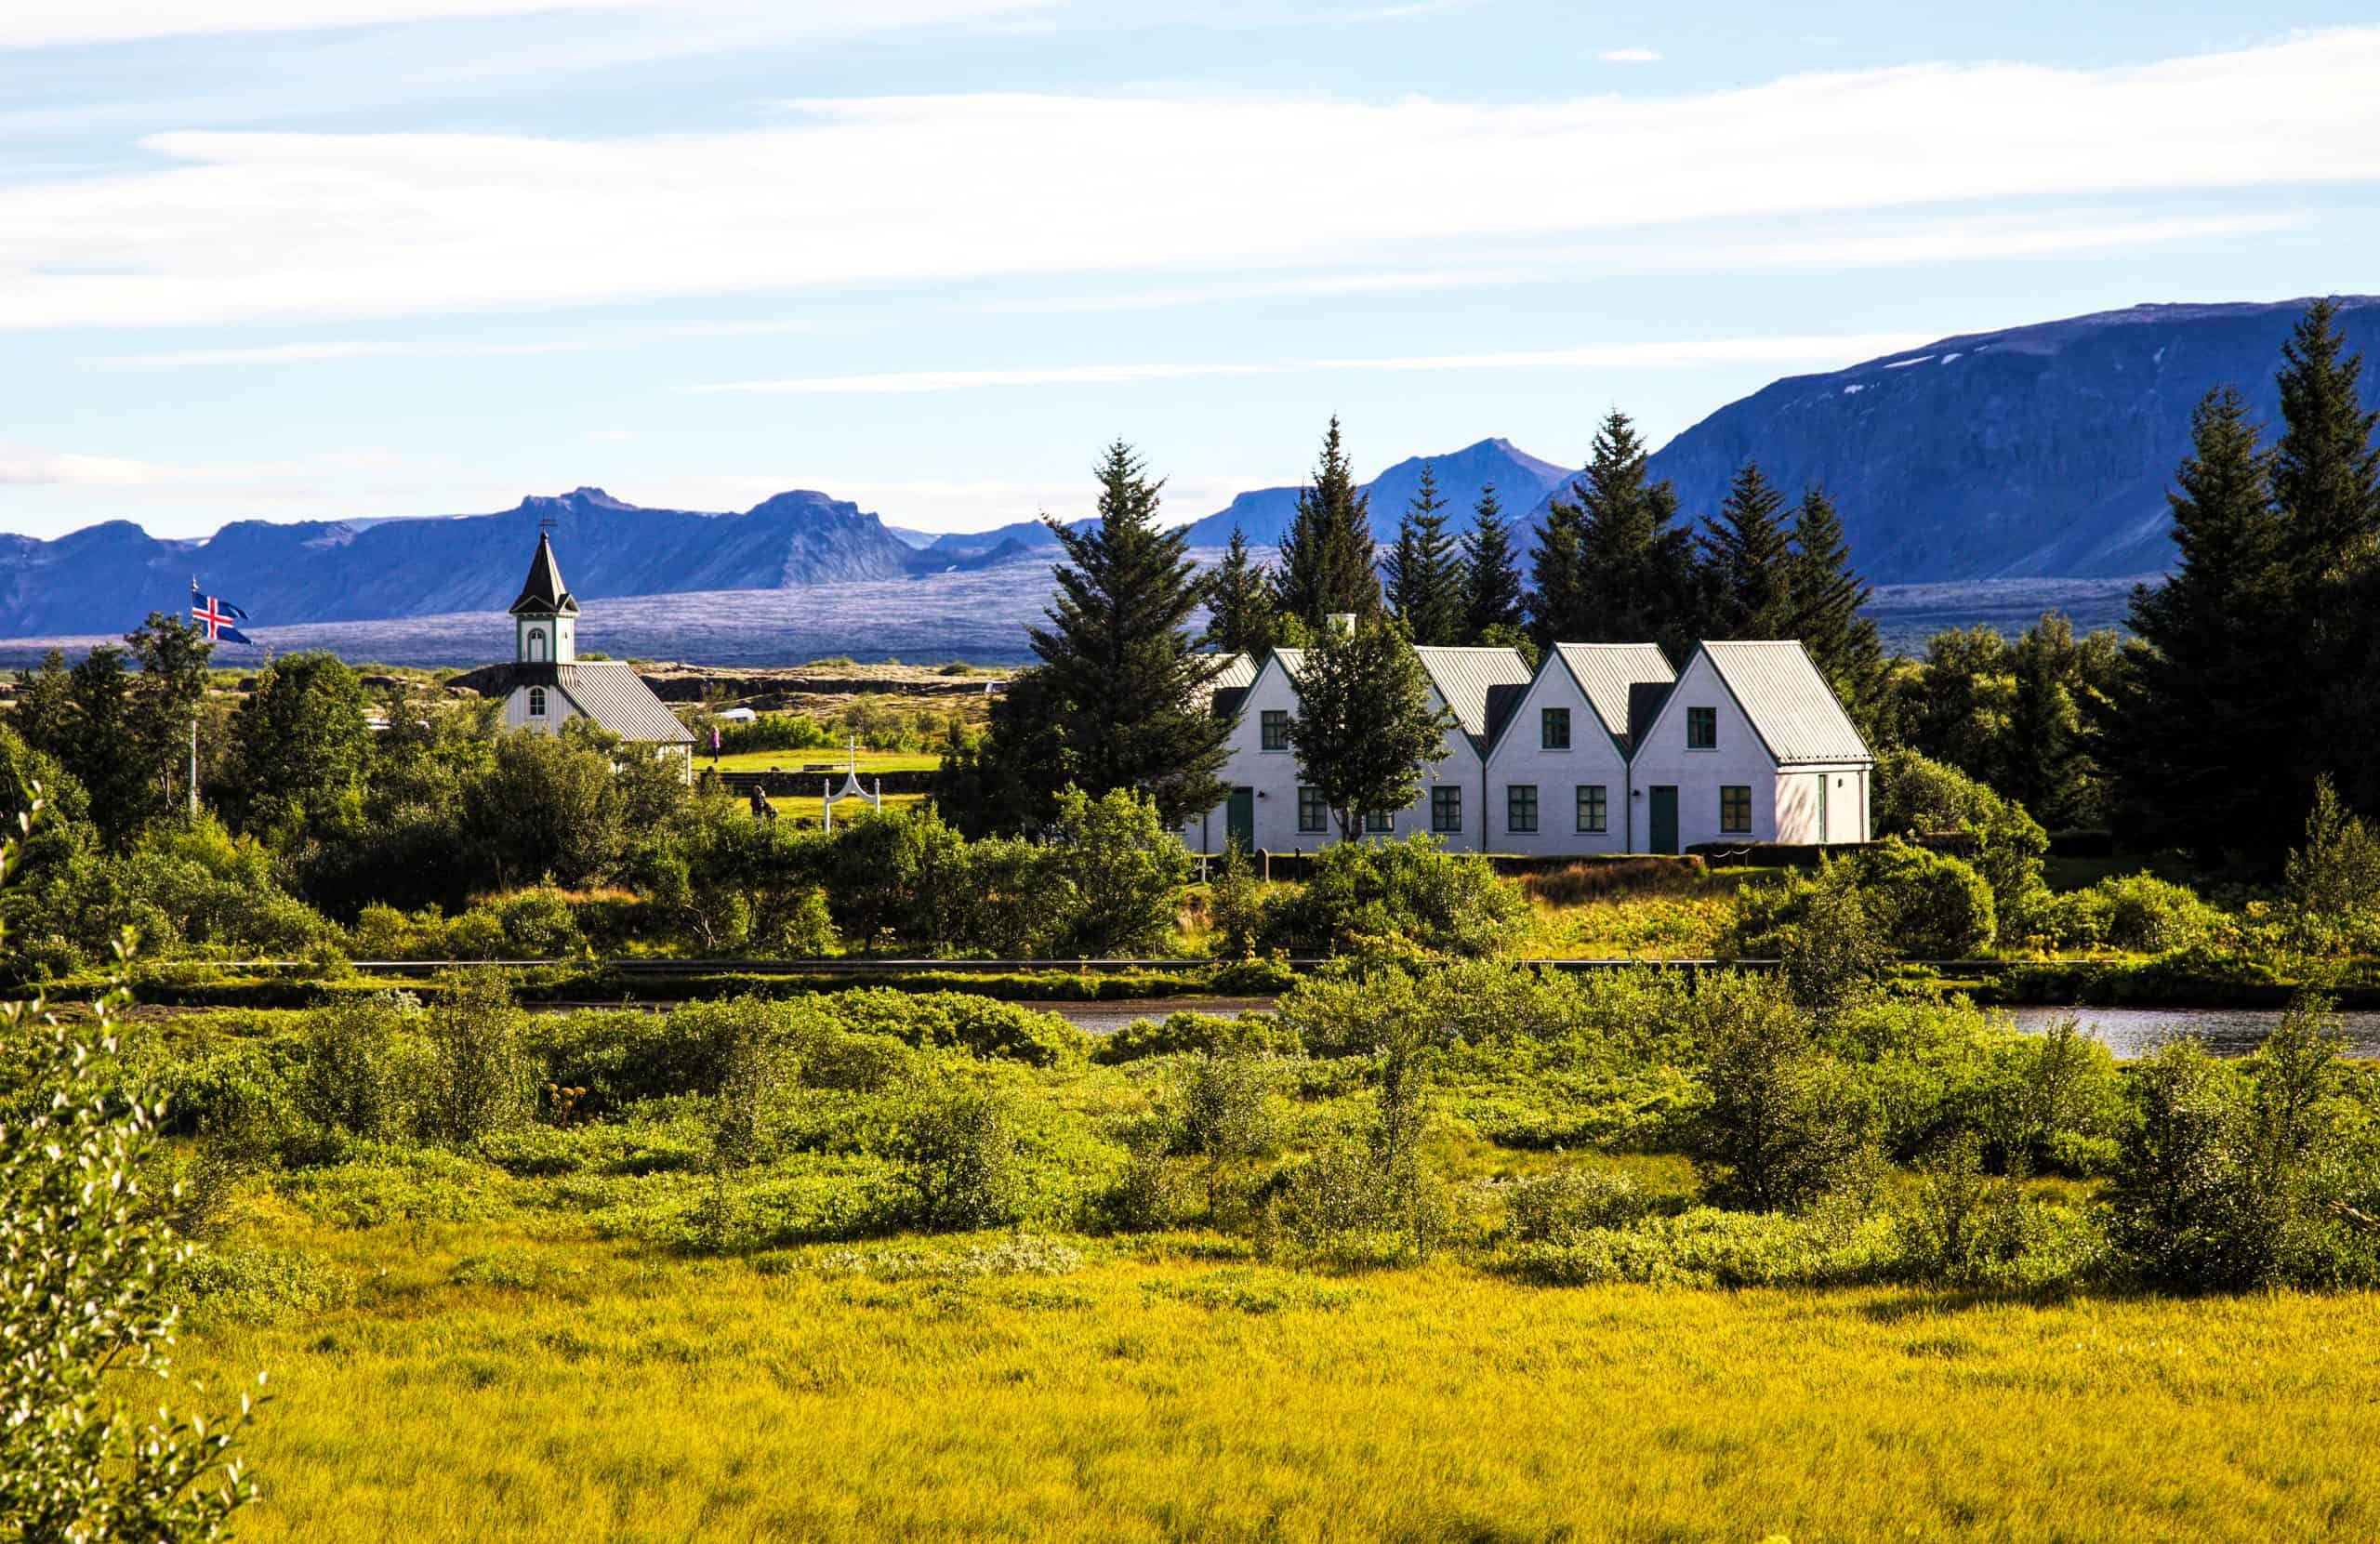 The Church in Thingvellir National Park on the Golden Circle in Iceland